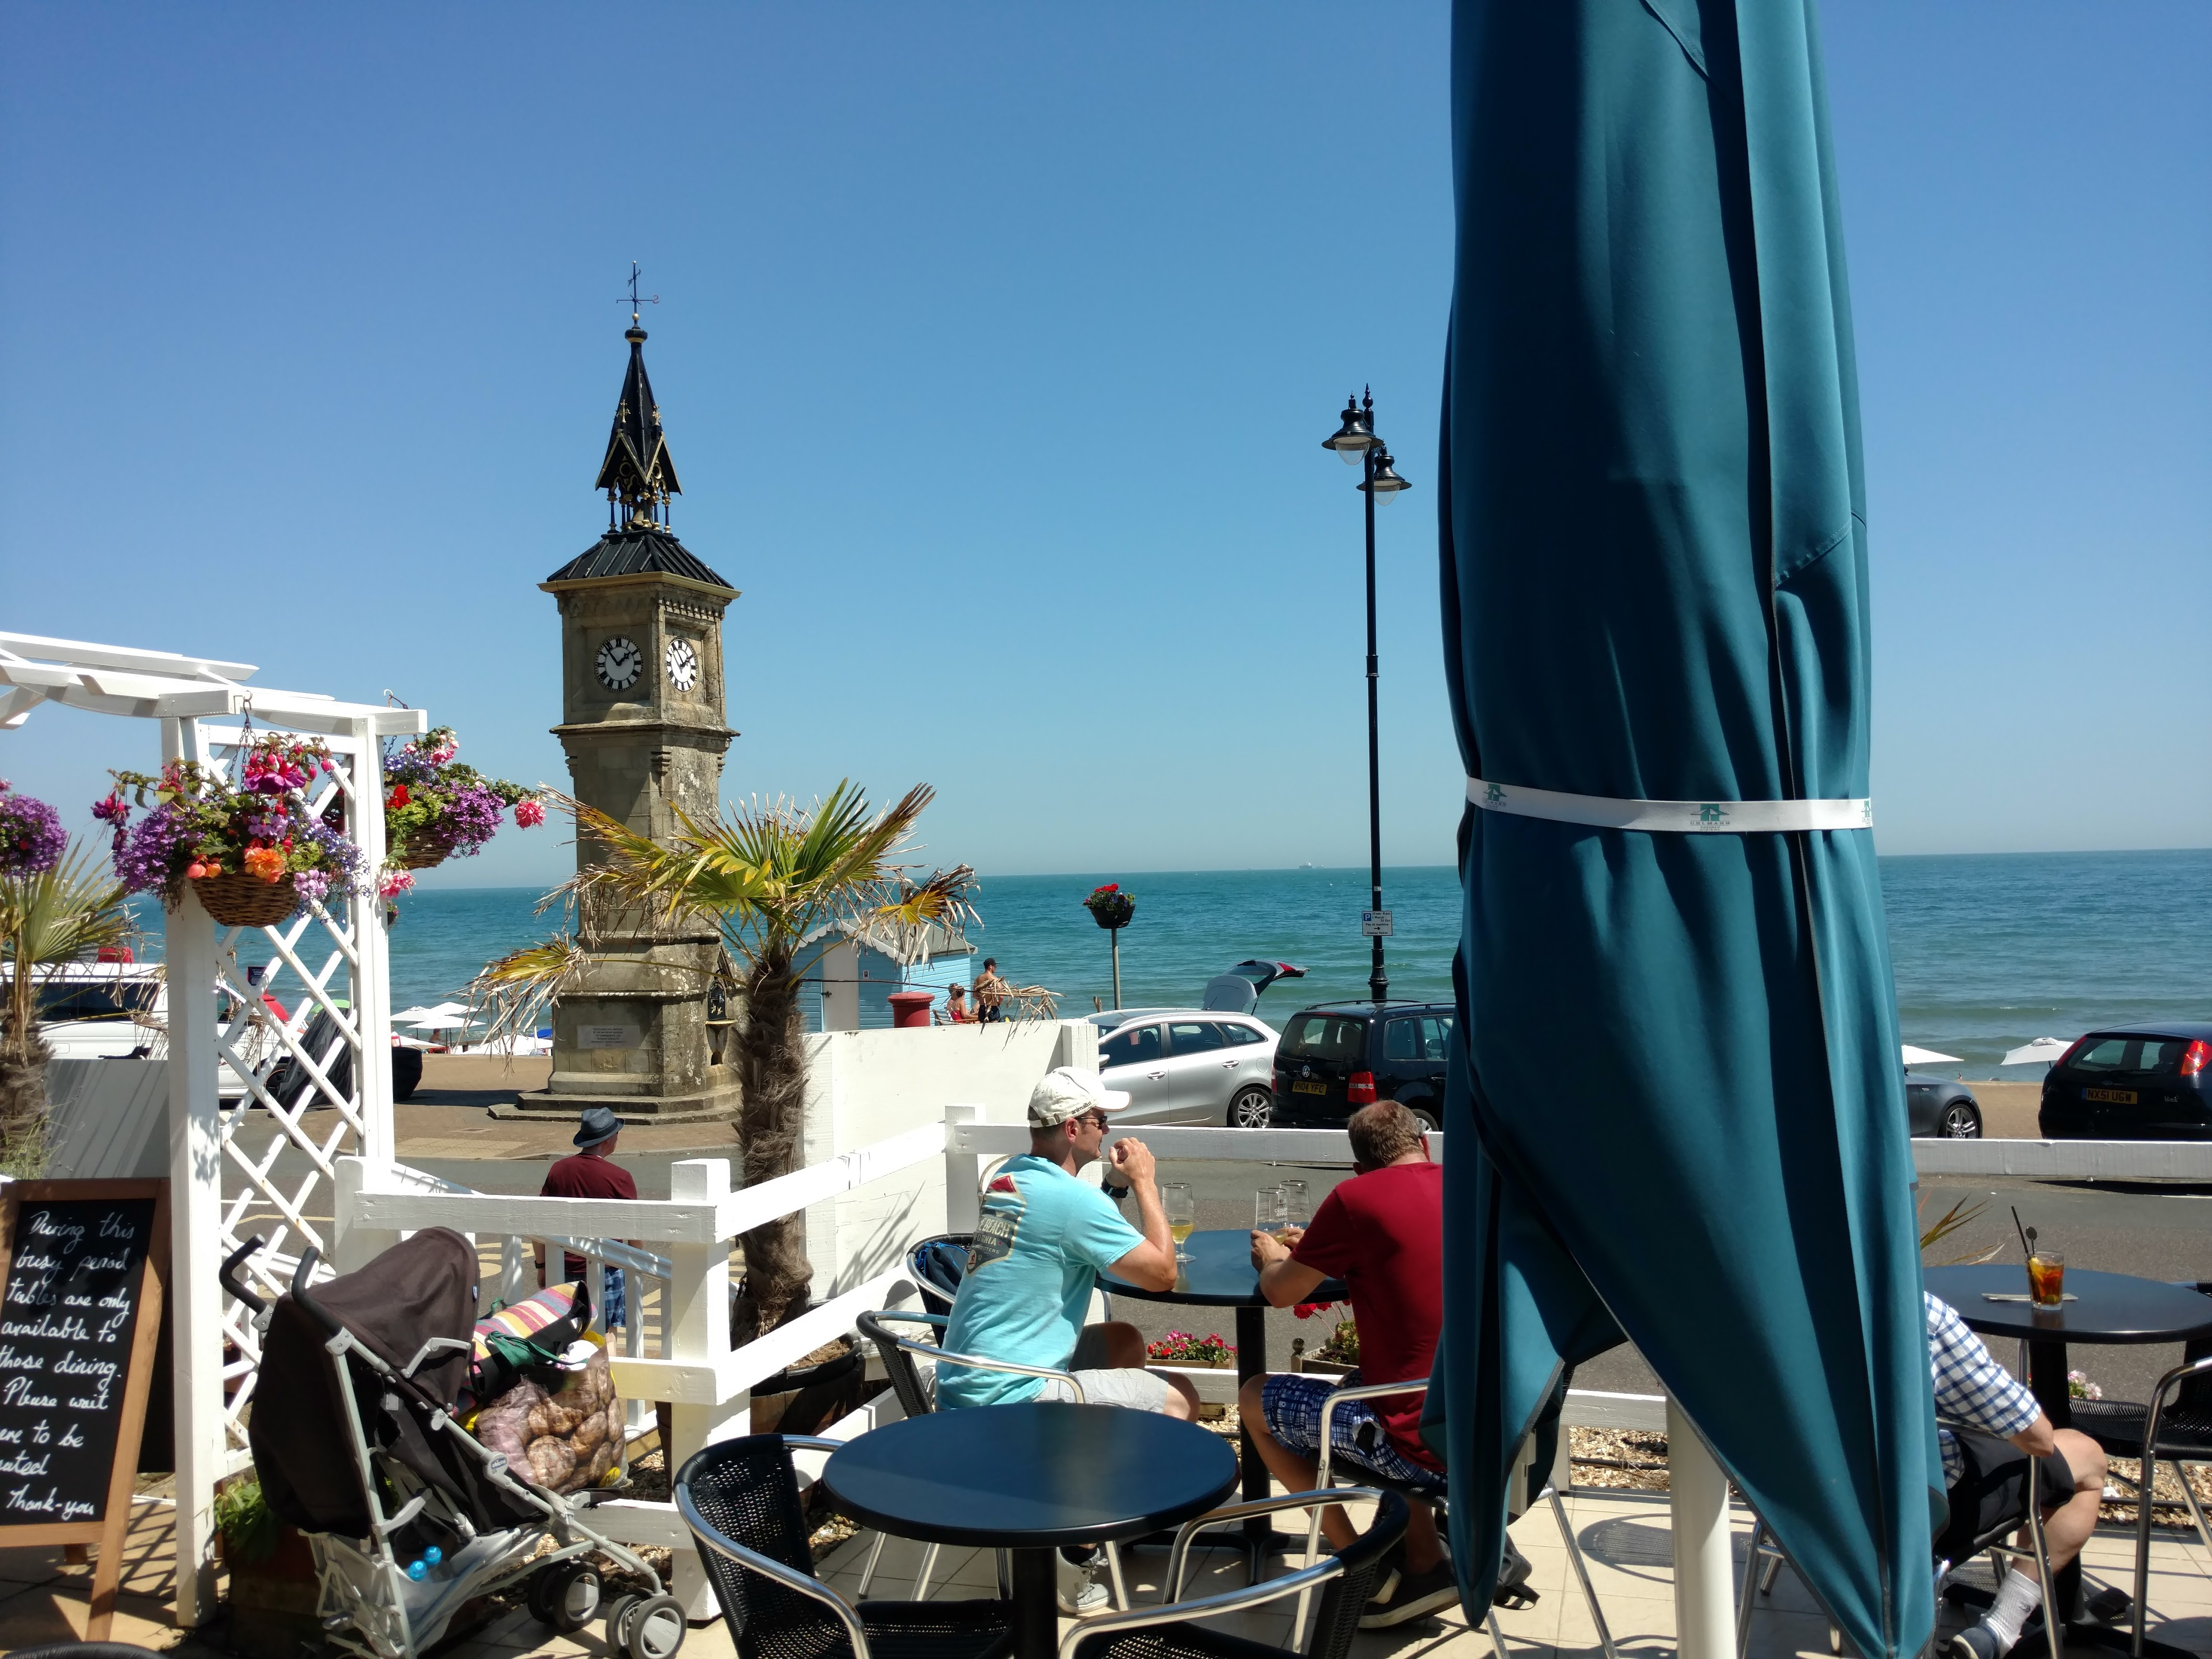 View from The Waterfront Inn, Shanklin, Isle of Wight